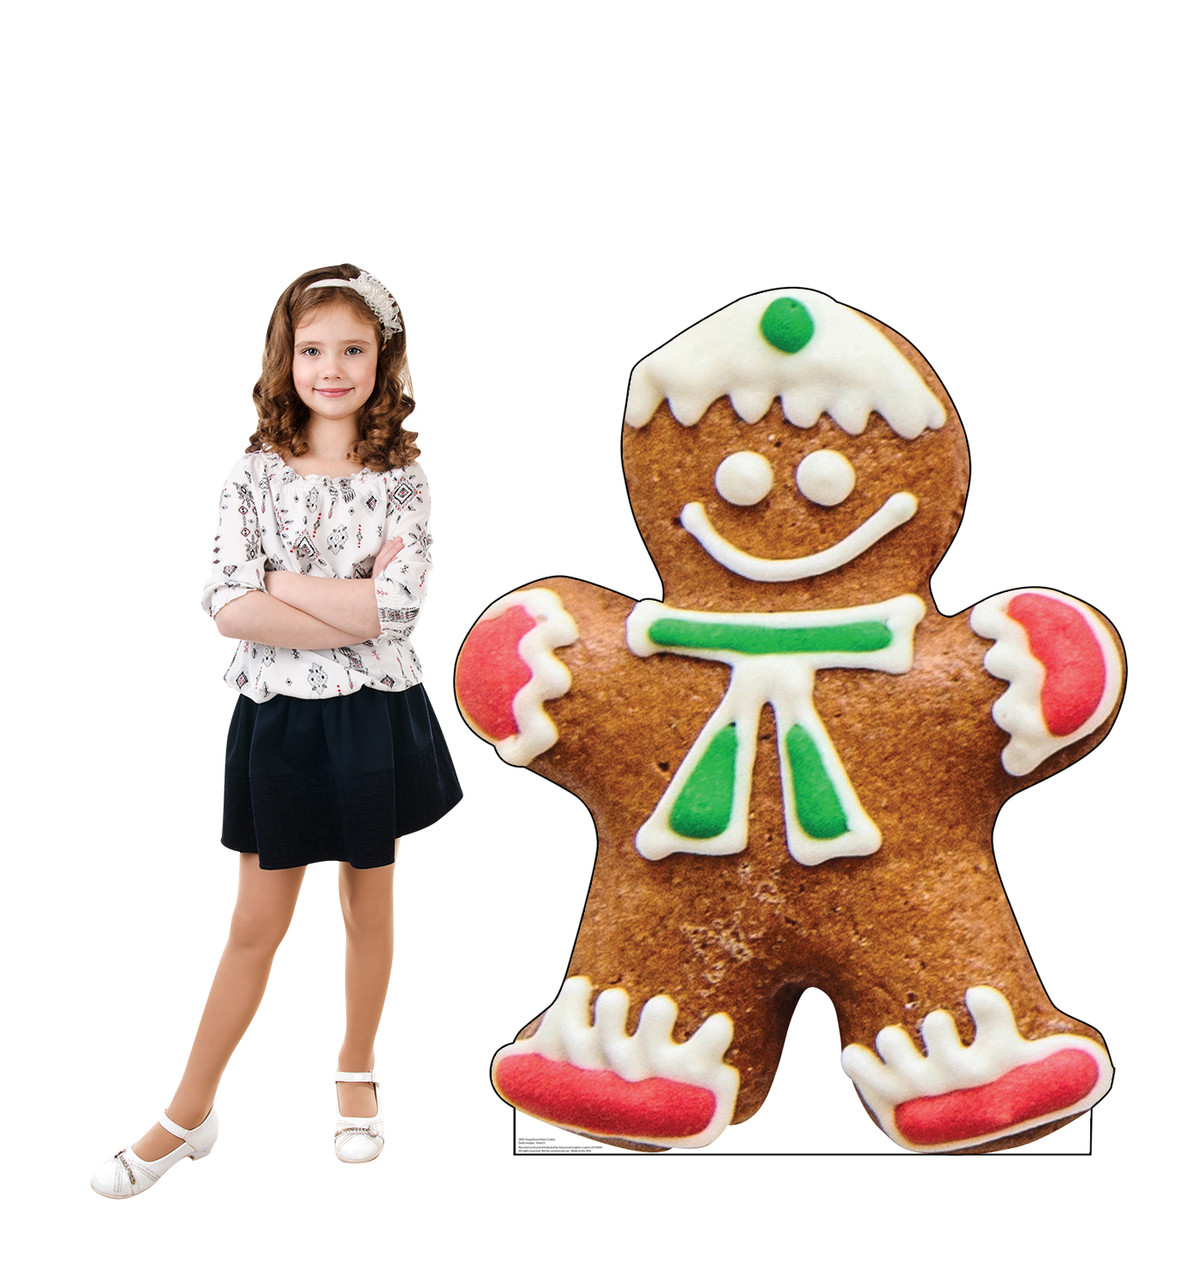 Life-size cardboard standee of Gingerbread Man Cookie with model.